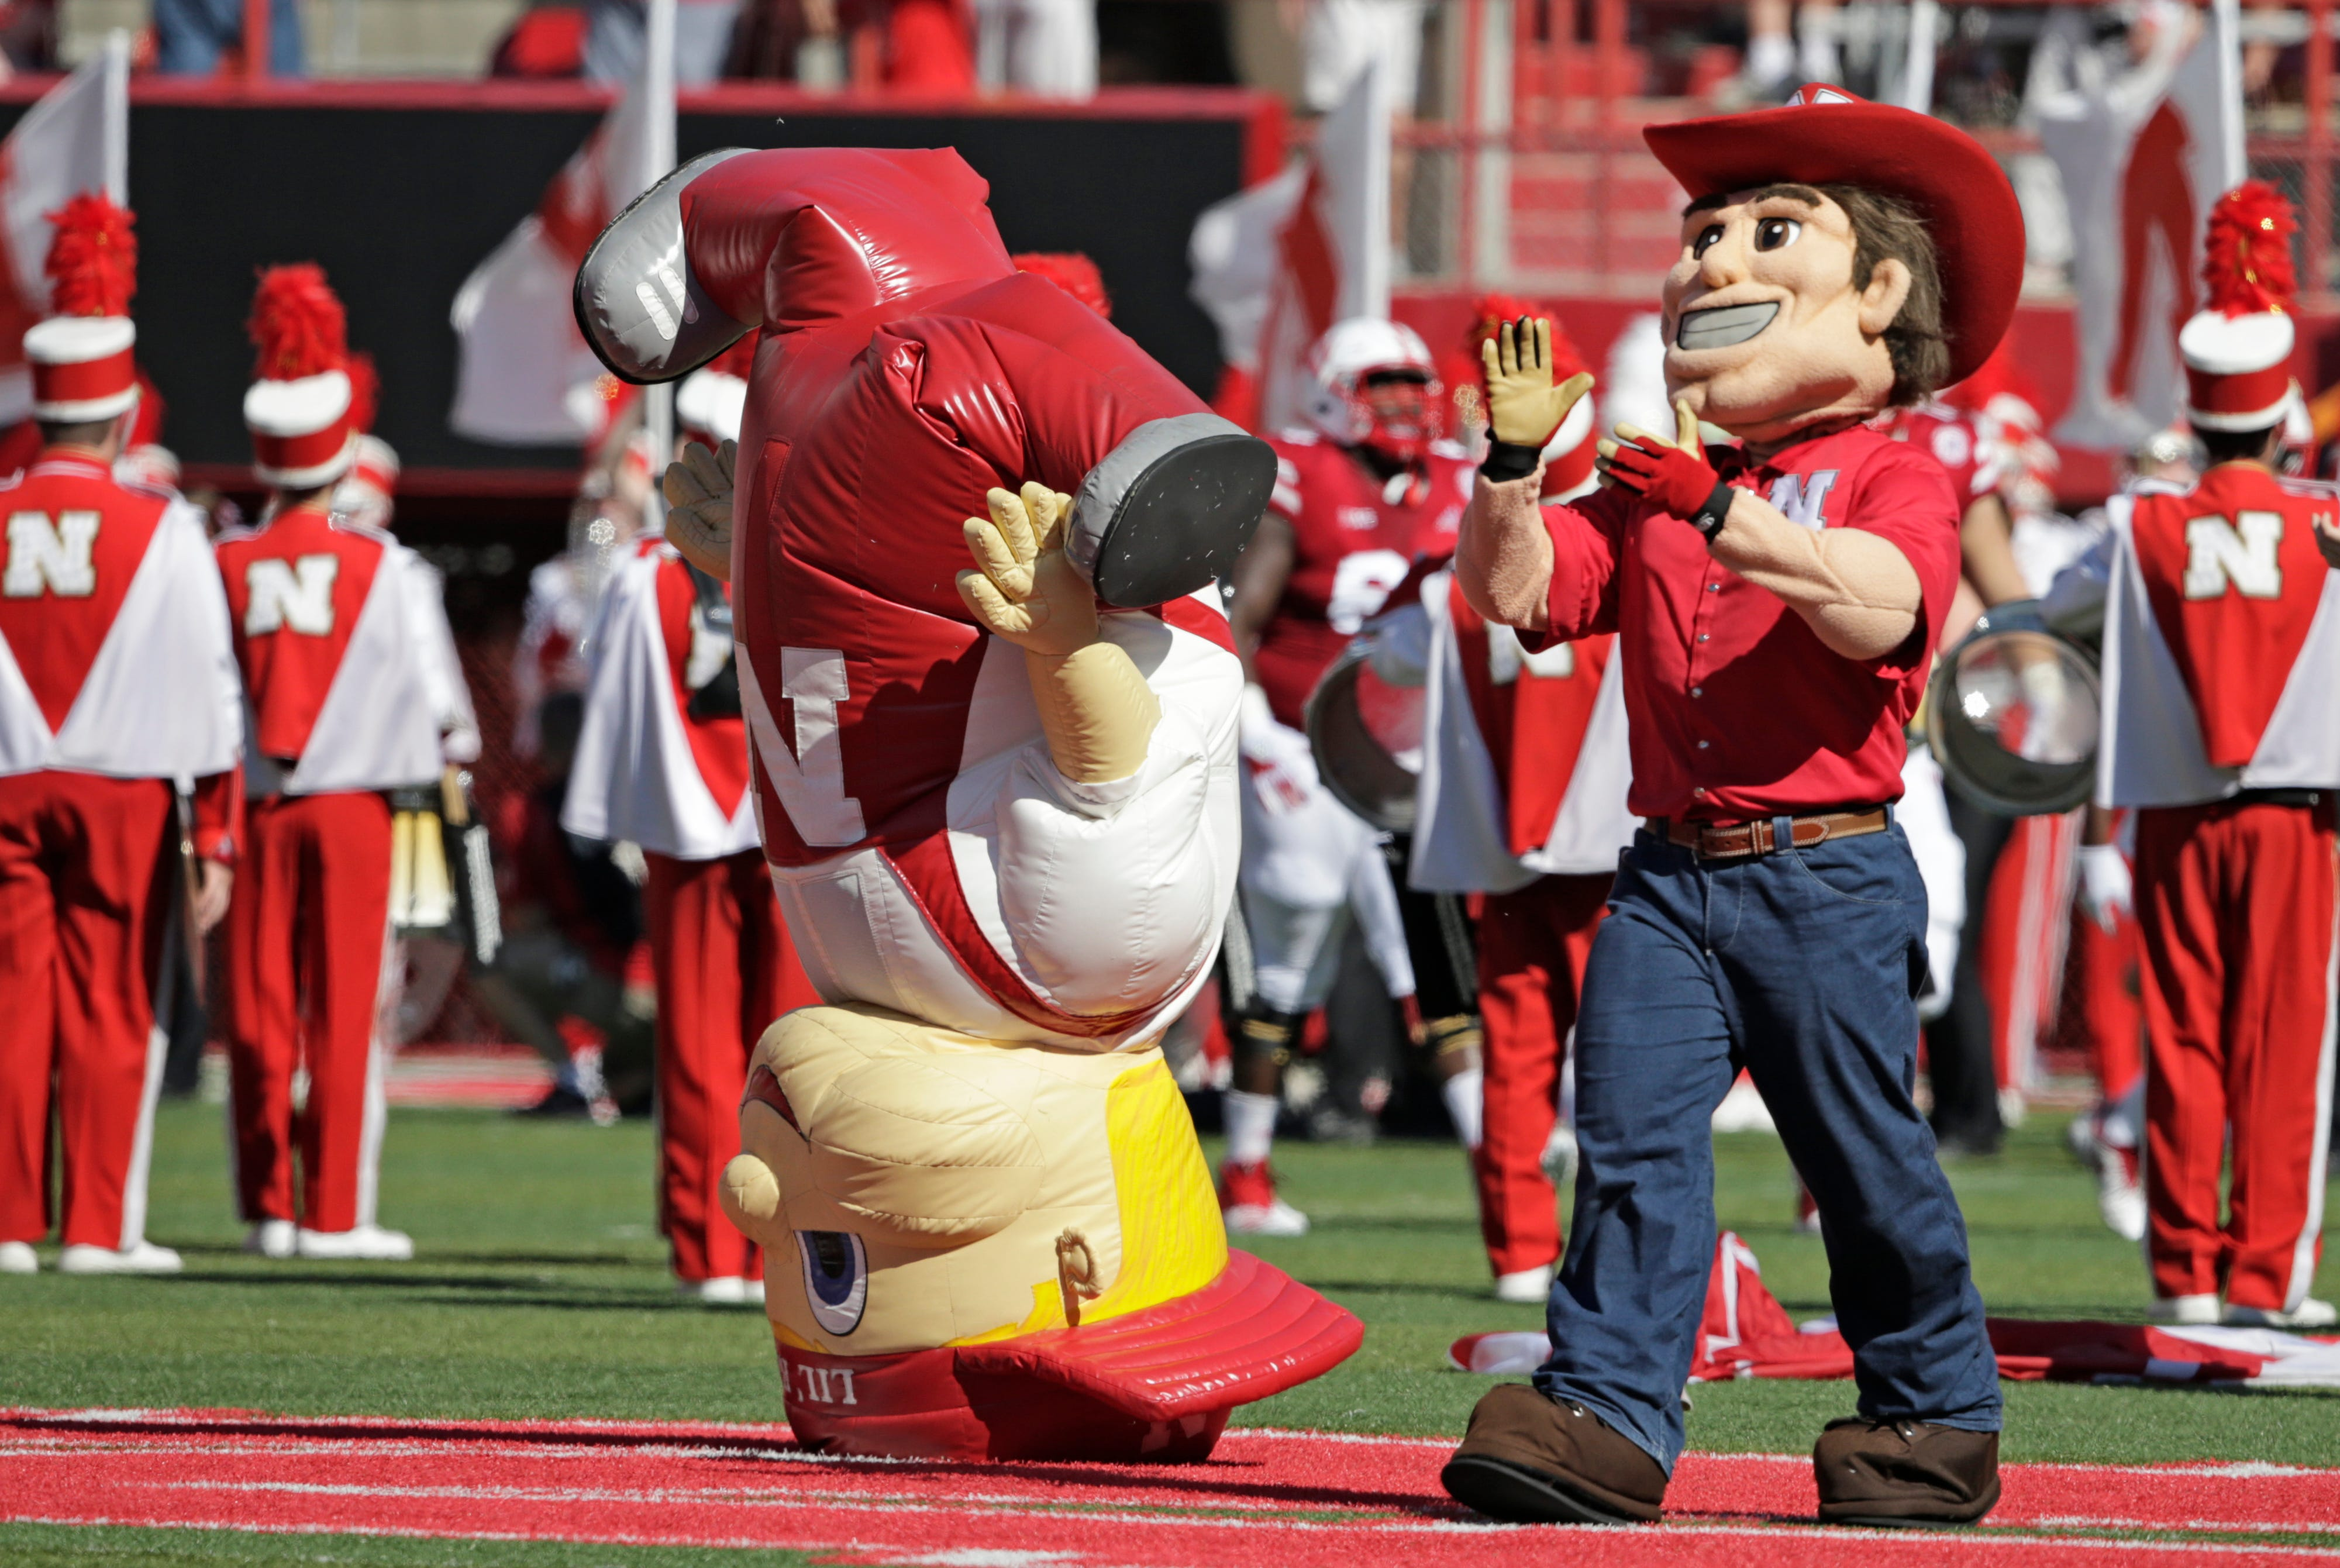 Troy turned Nebraska's world upside down with Saturday's win over the Cornhuskers.